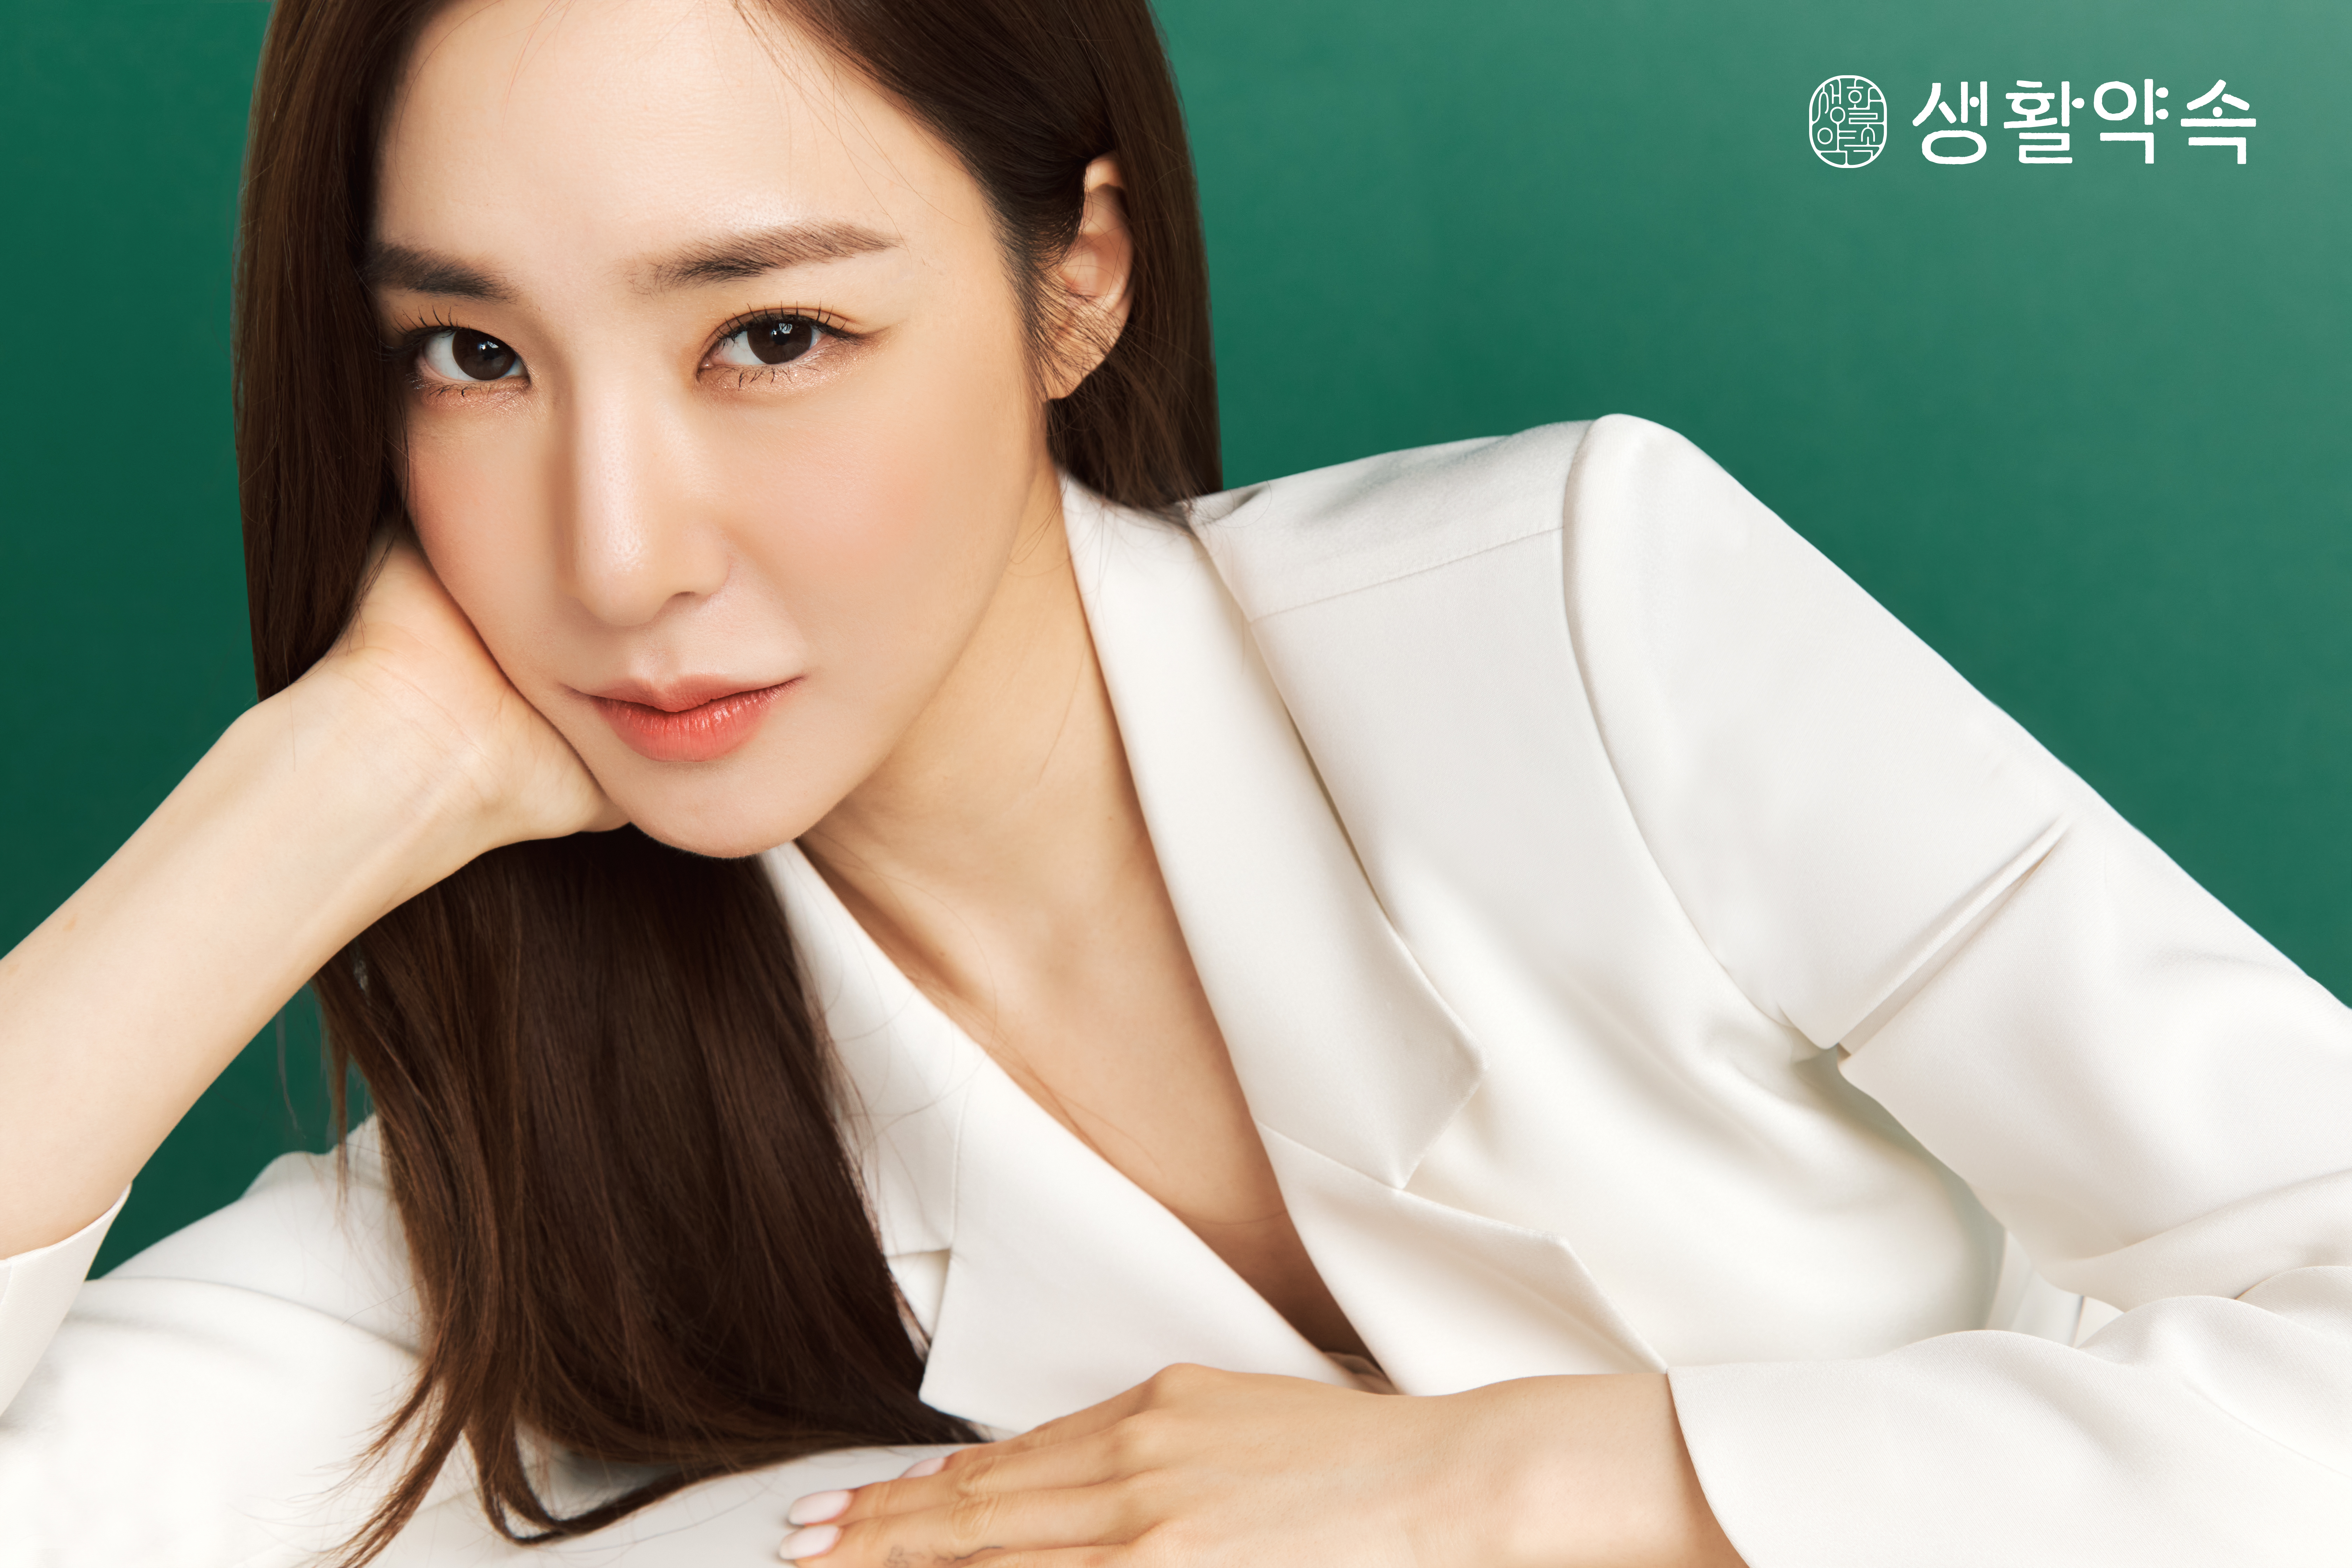 Tiffany – Lifepharm Promotional Pictures